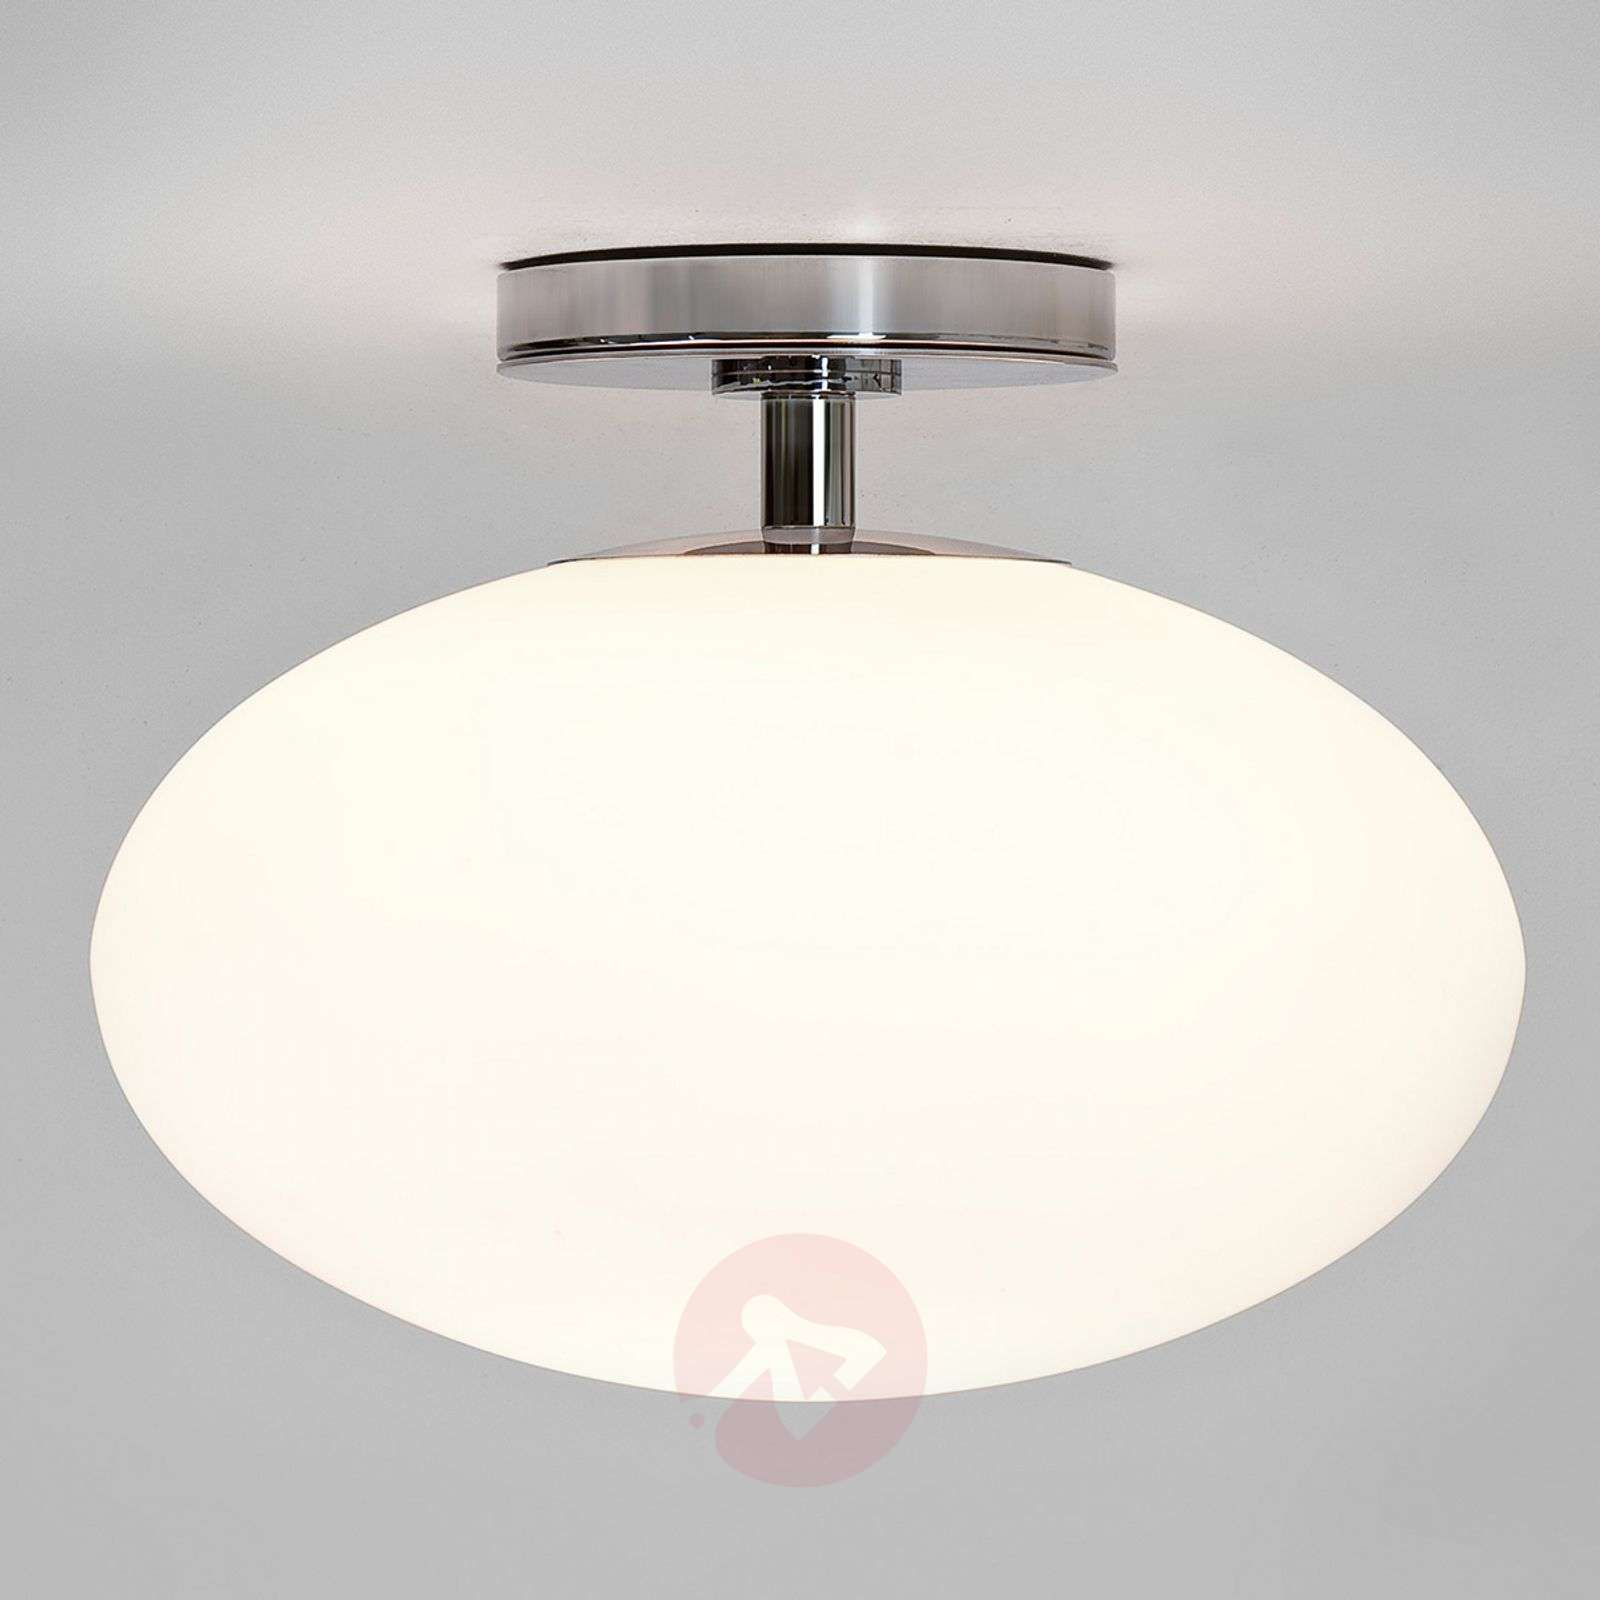 ... Zeppo Bathroom Ceiling Light Oval IP44 1020303 02